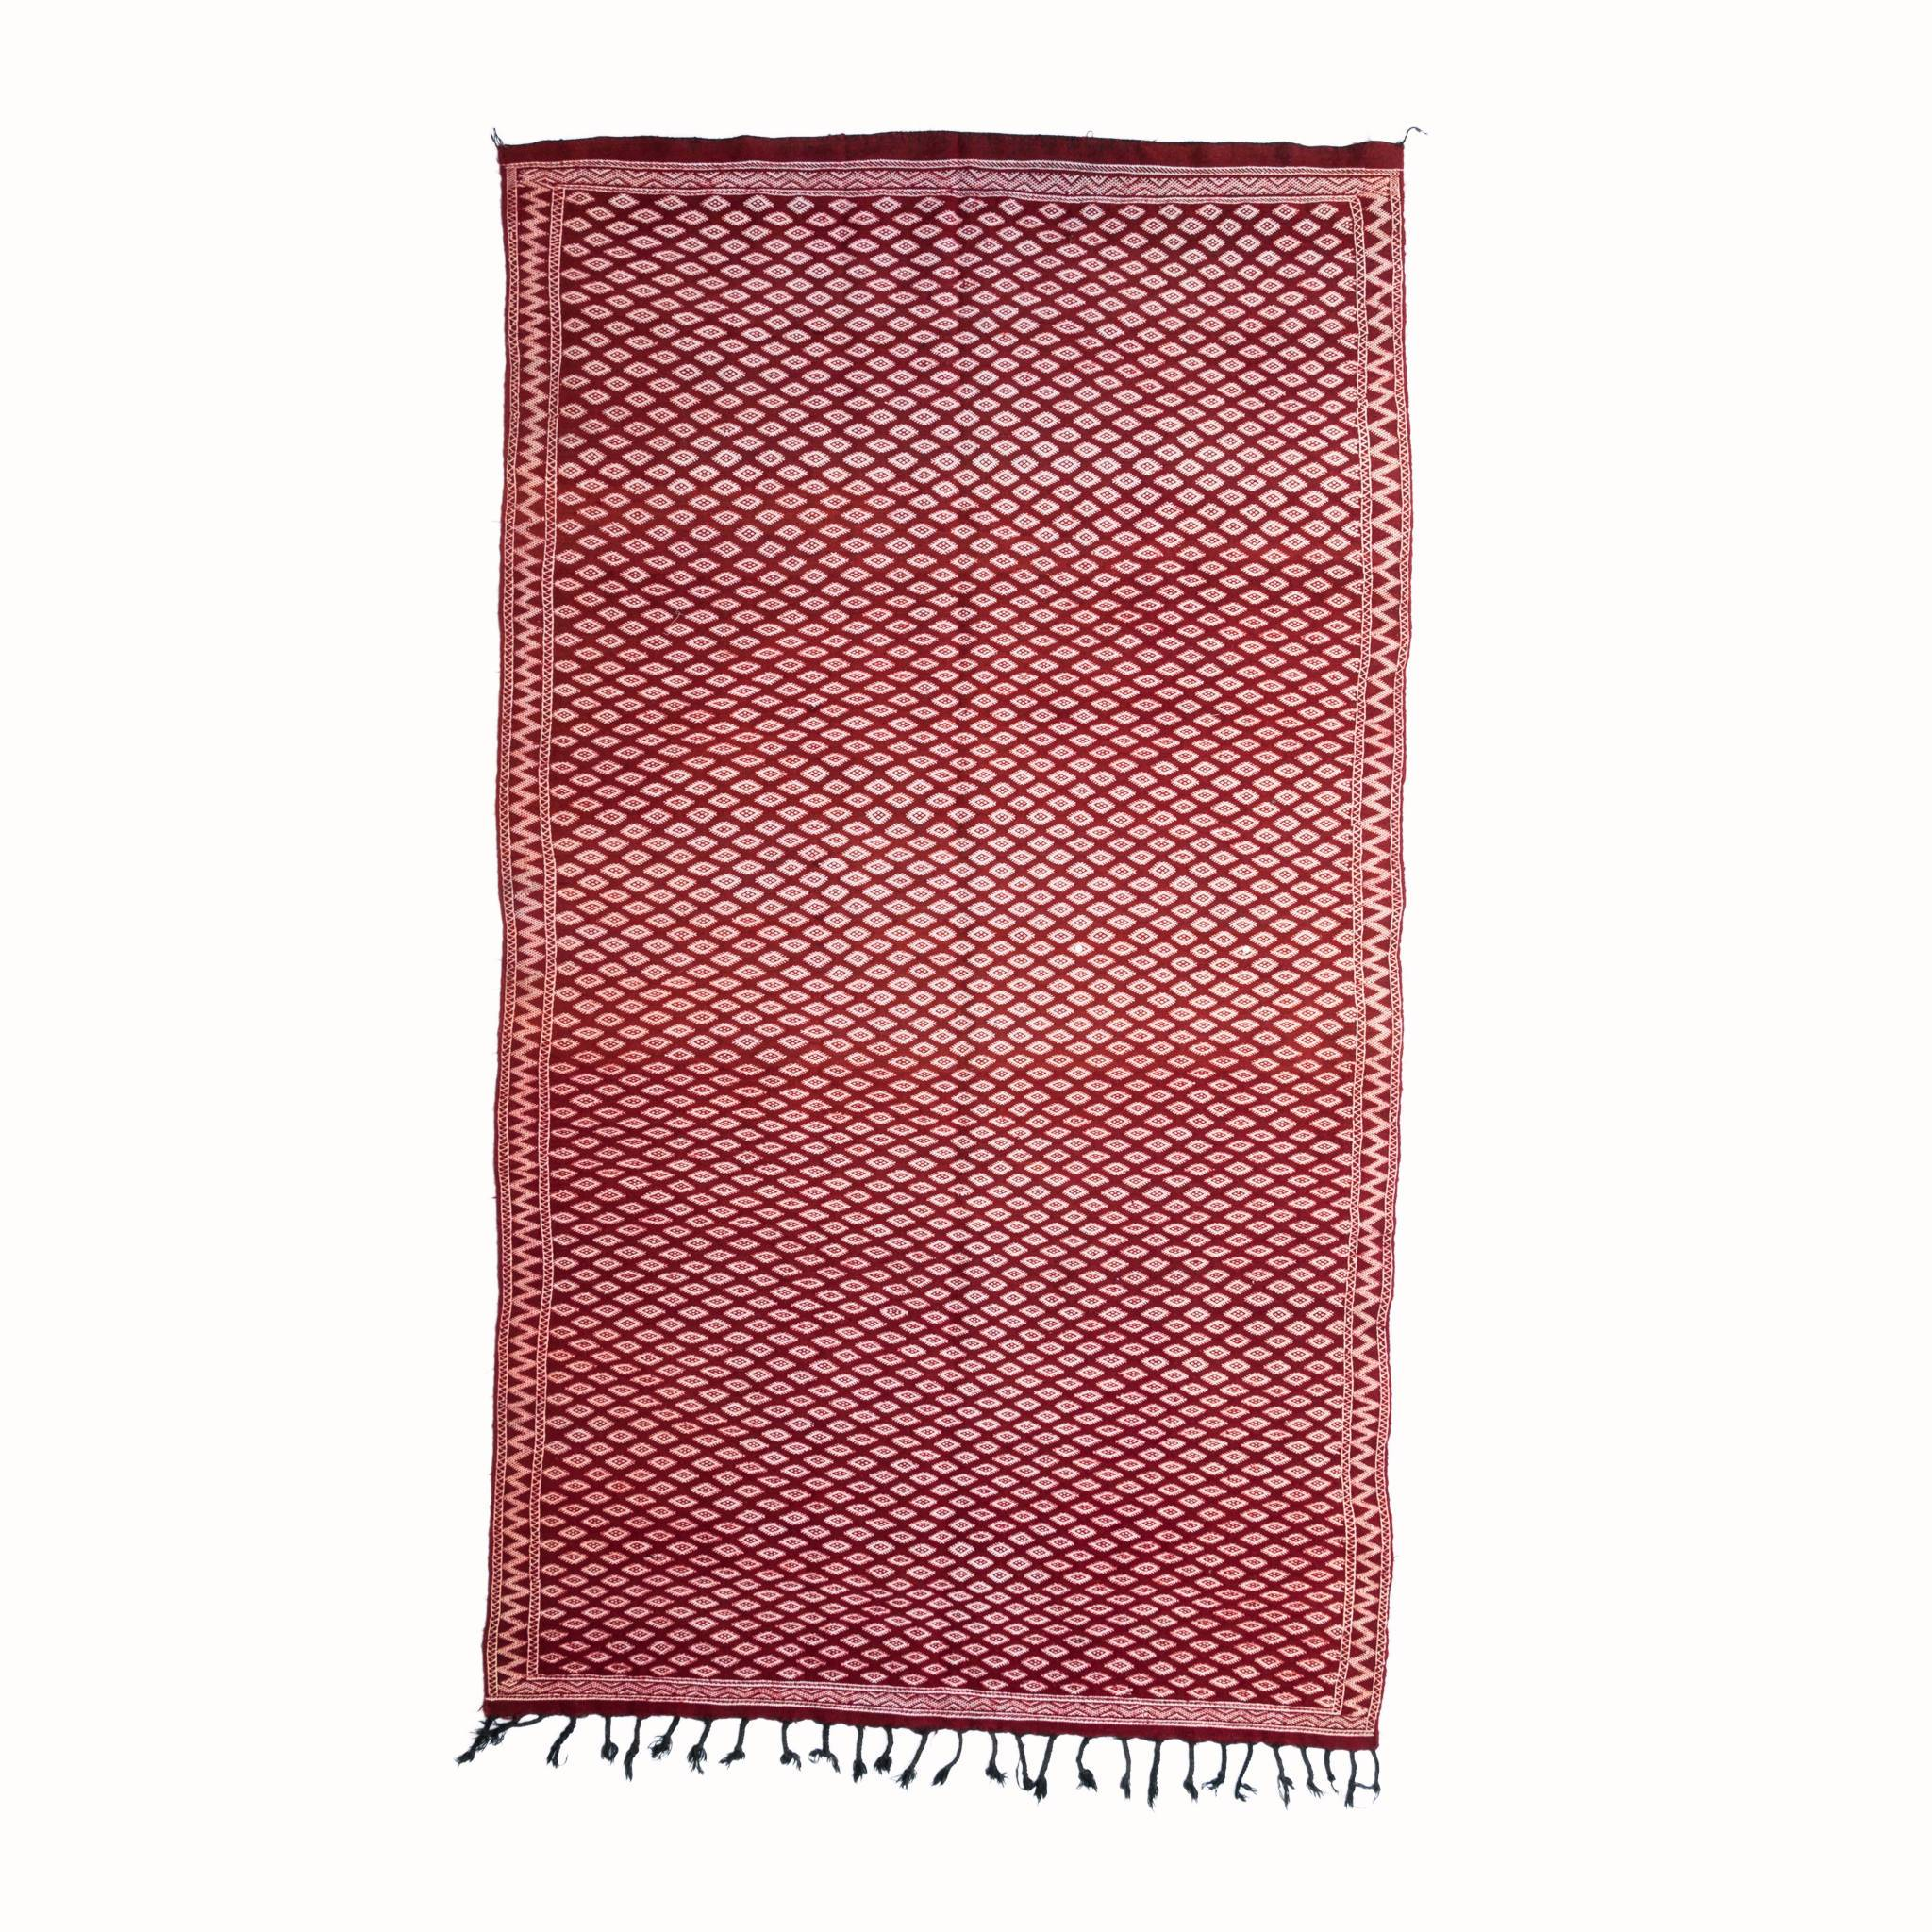 Exquisite Wine Red Kilim Rug